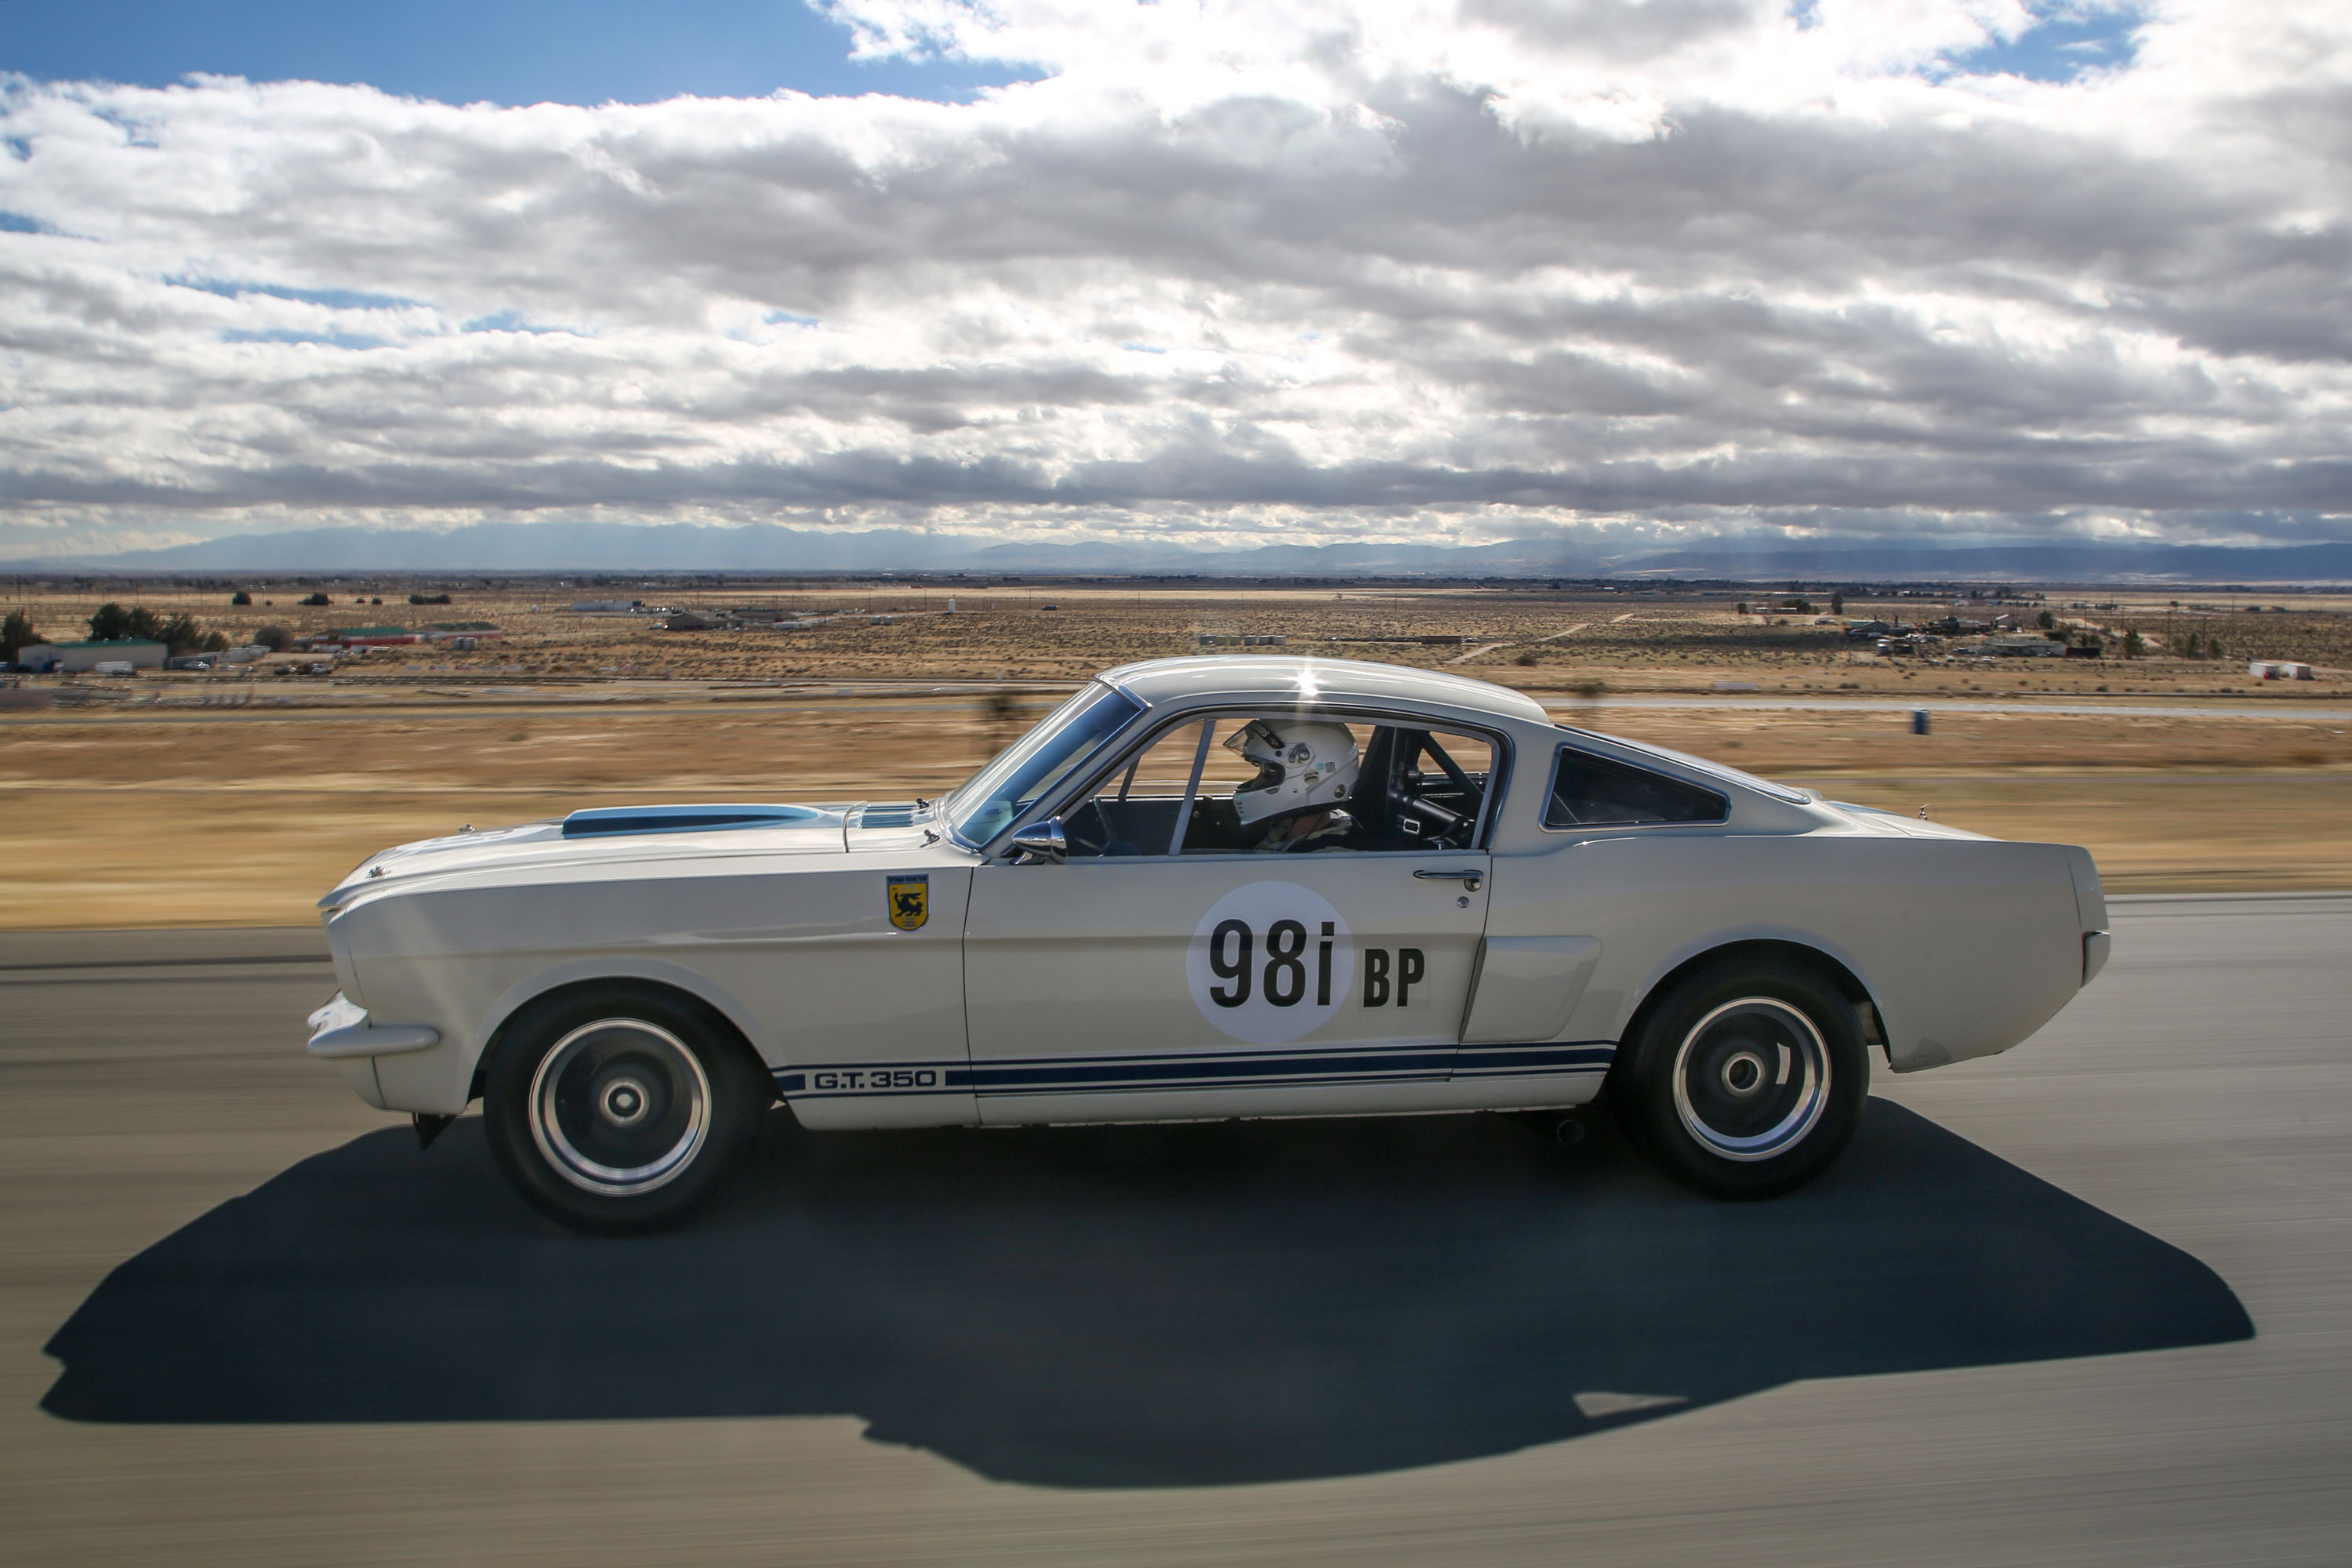 Carroll Shelby wanted to include quarter windows in the 1965 models, and eventually incorporated them in the 1966 models. The factory vented louvers are attractive but heavy and prone to leaks.